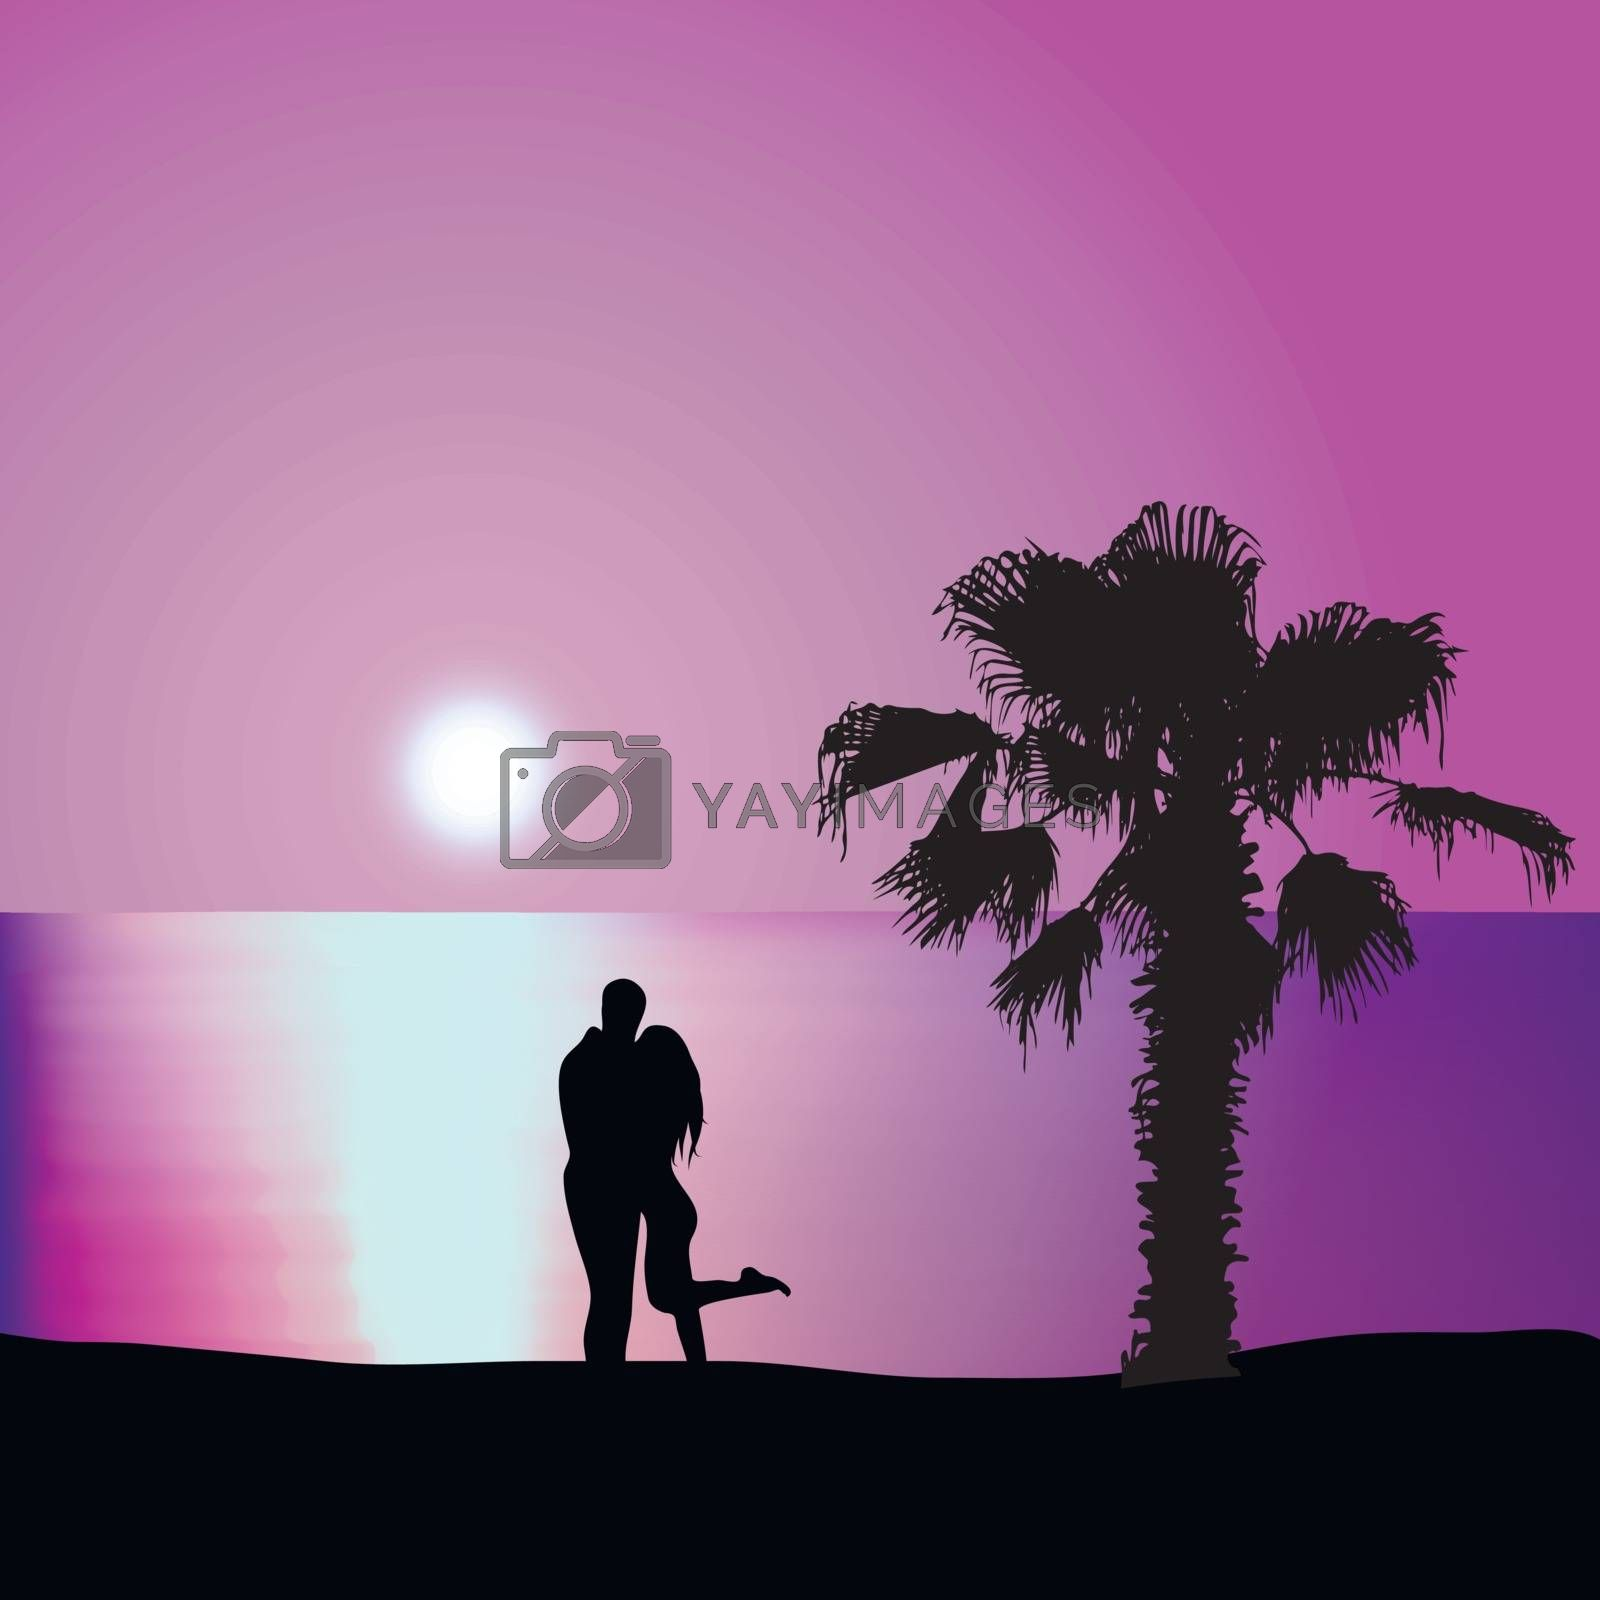 Man embraces woman on the seashore at night